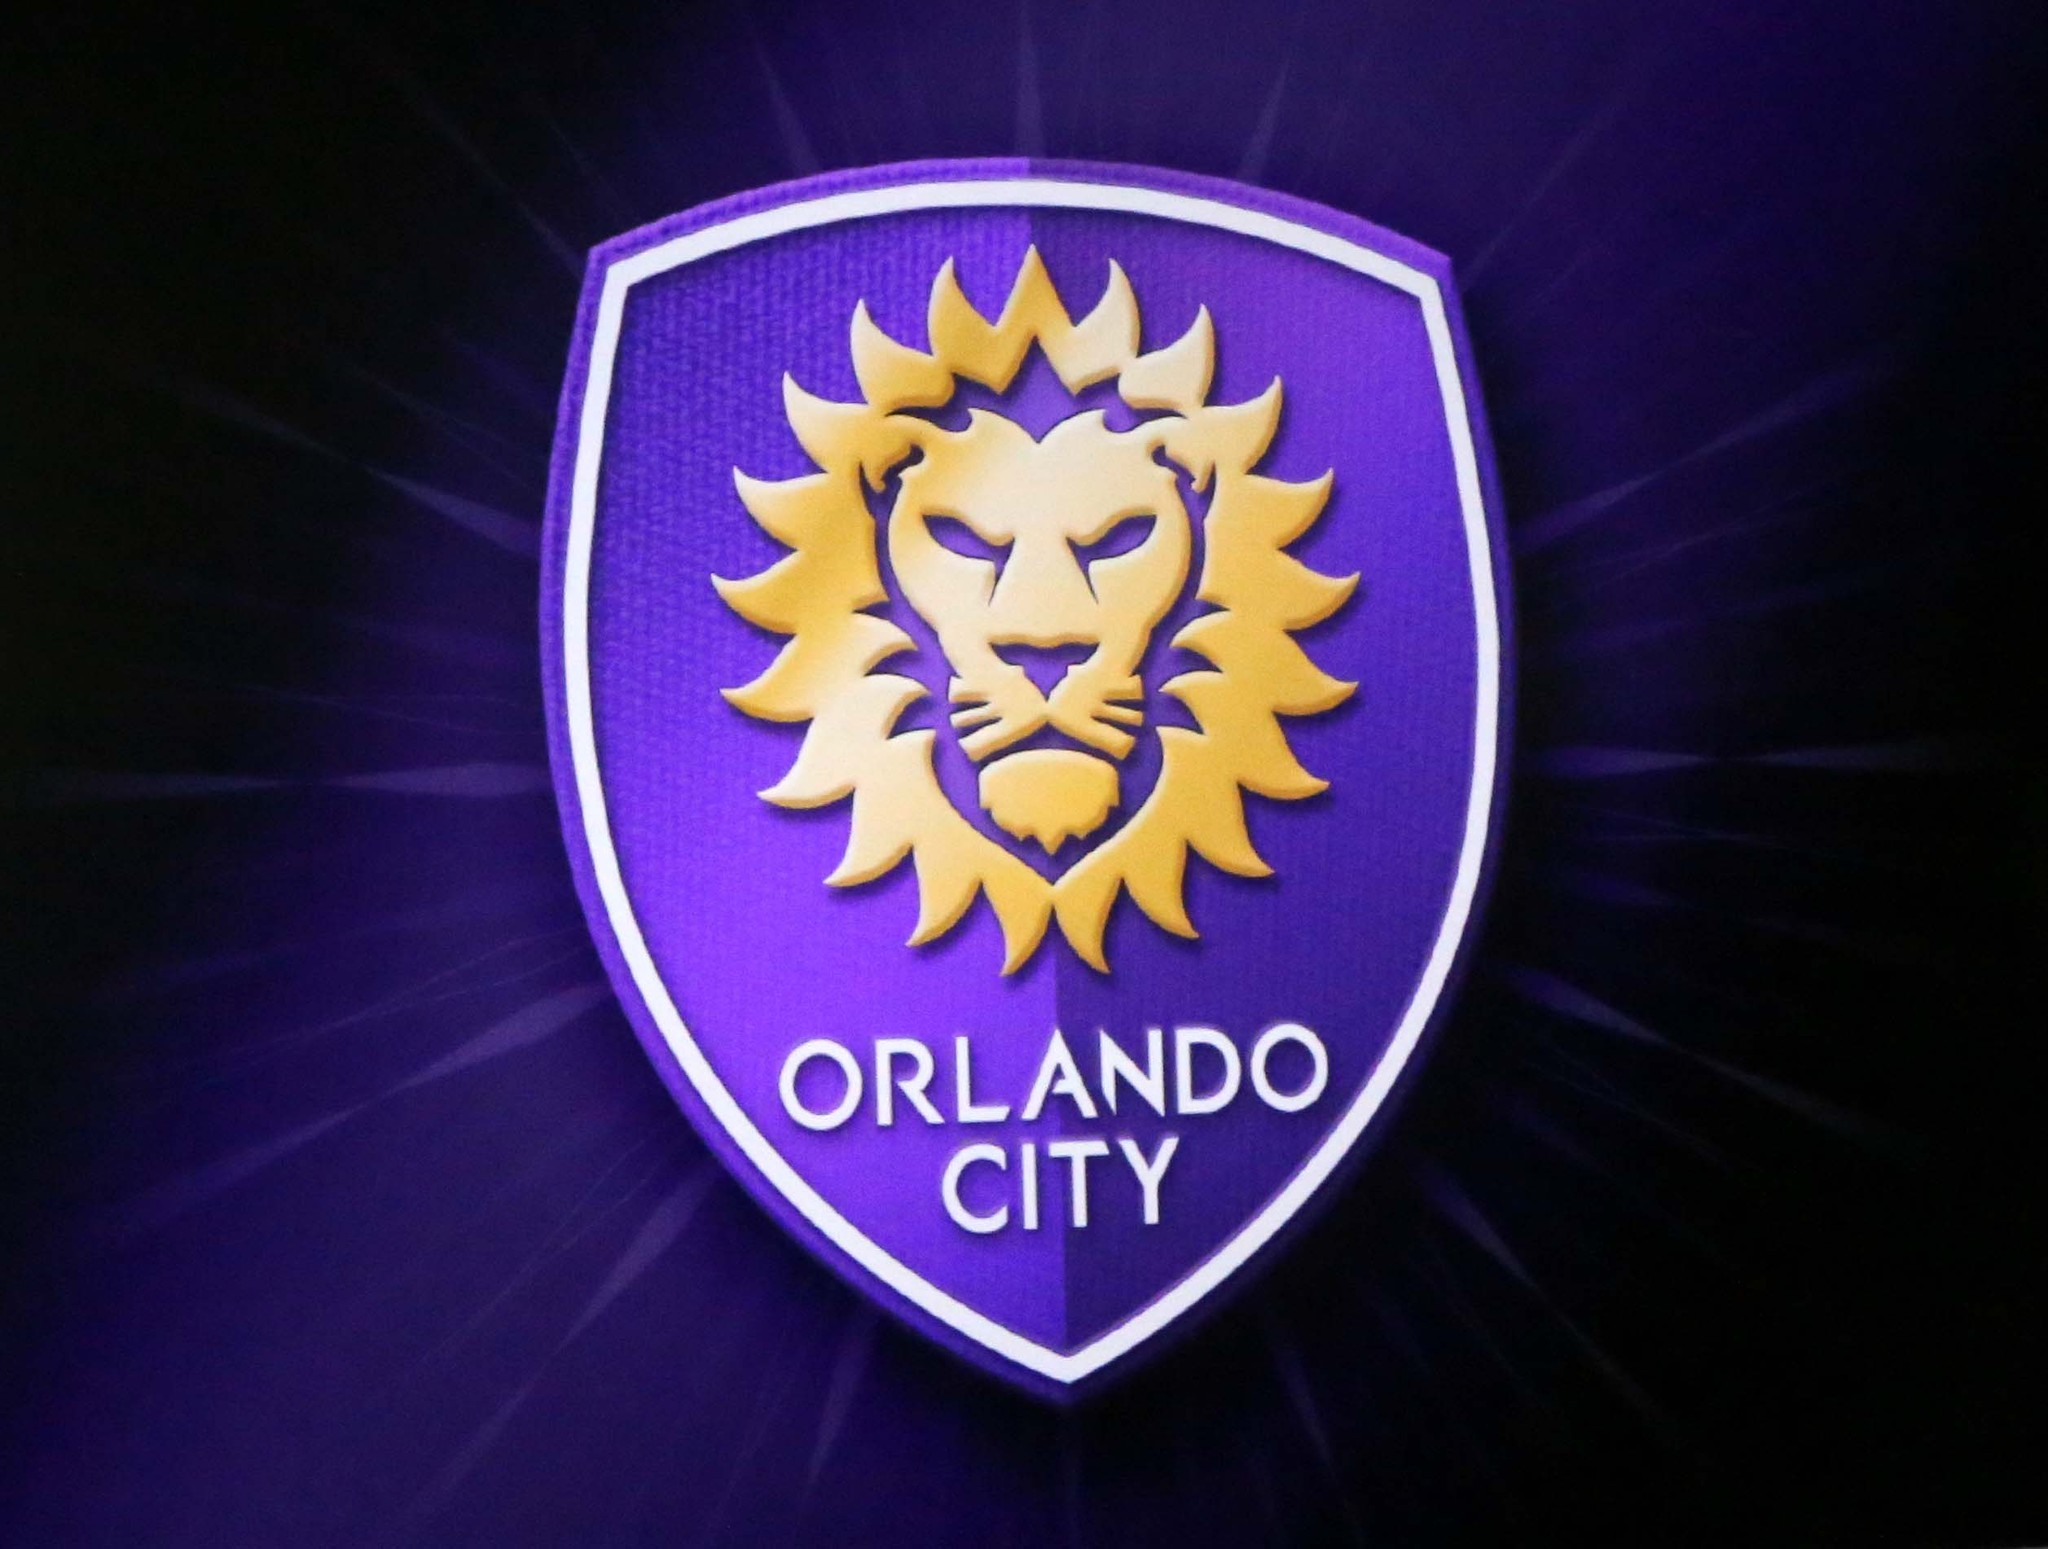 magic city club logo - photo #21